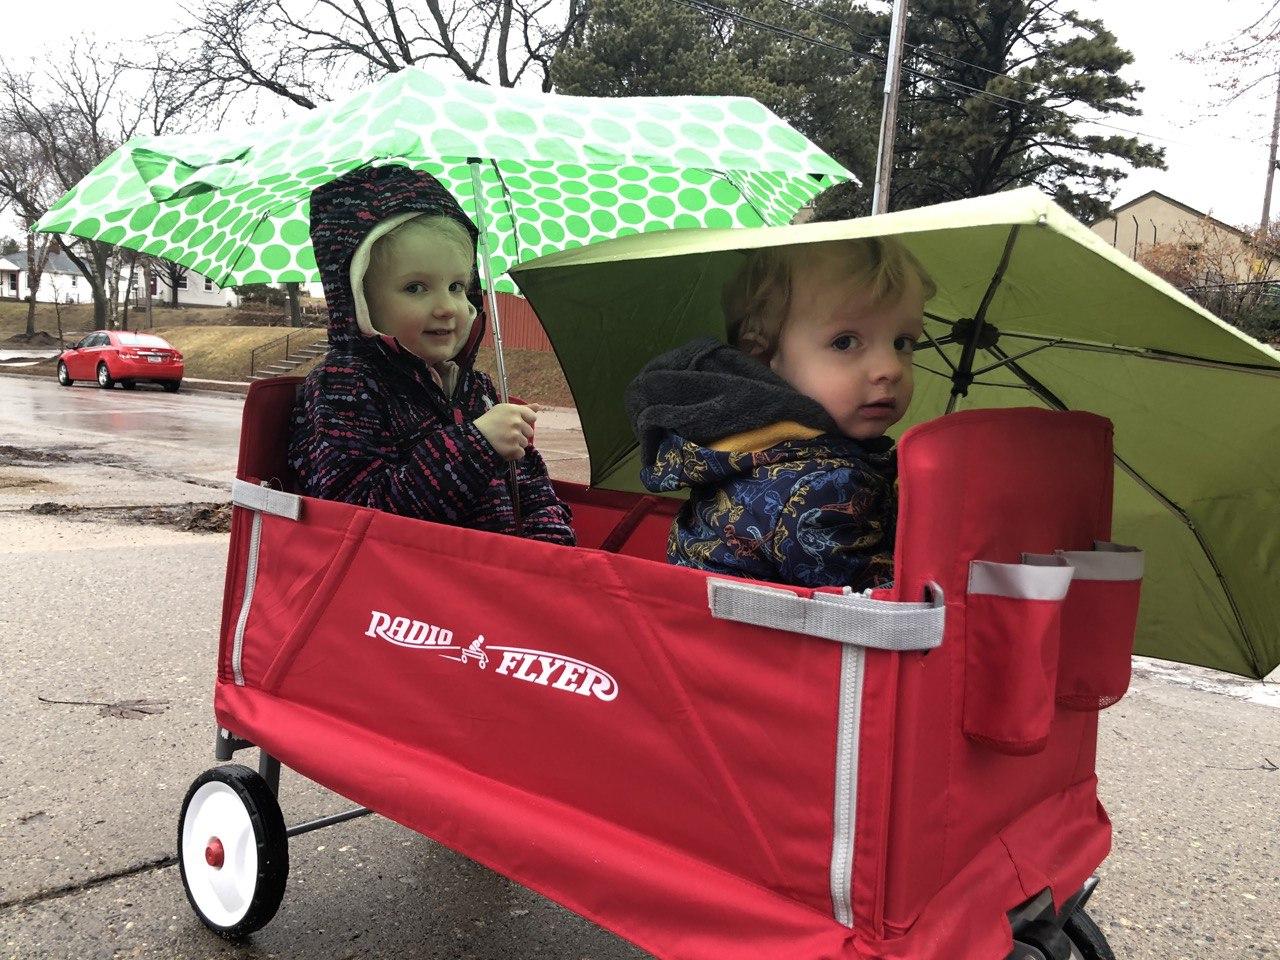 Imogene and Brennan were even good sports with getting outdoors on rainy days.